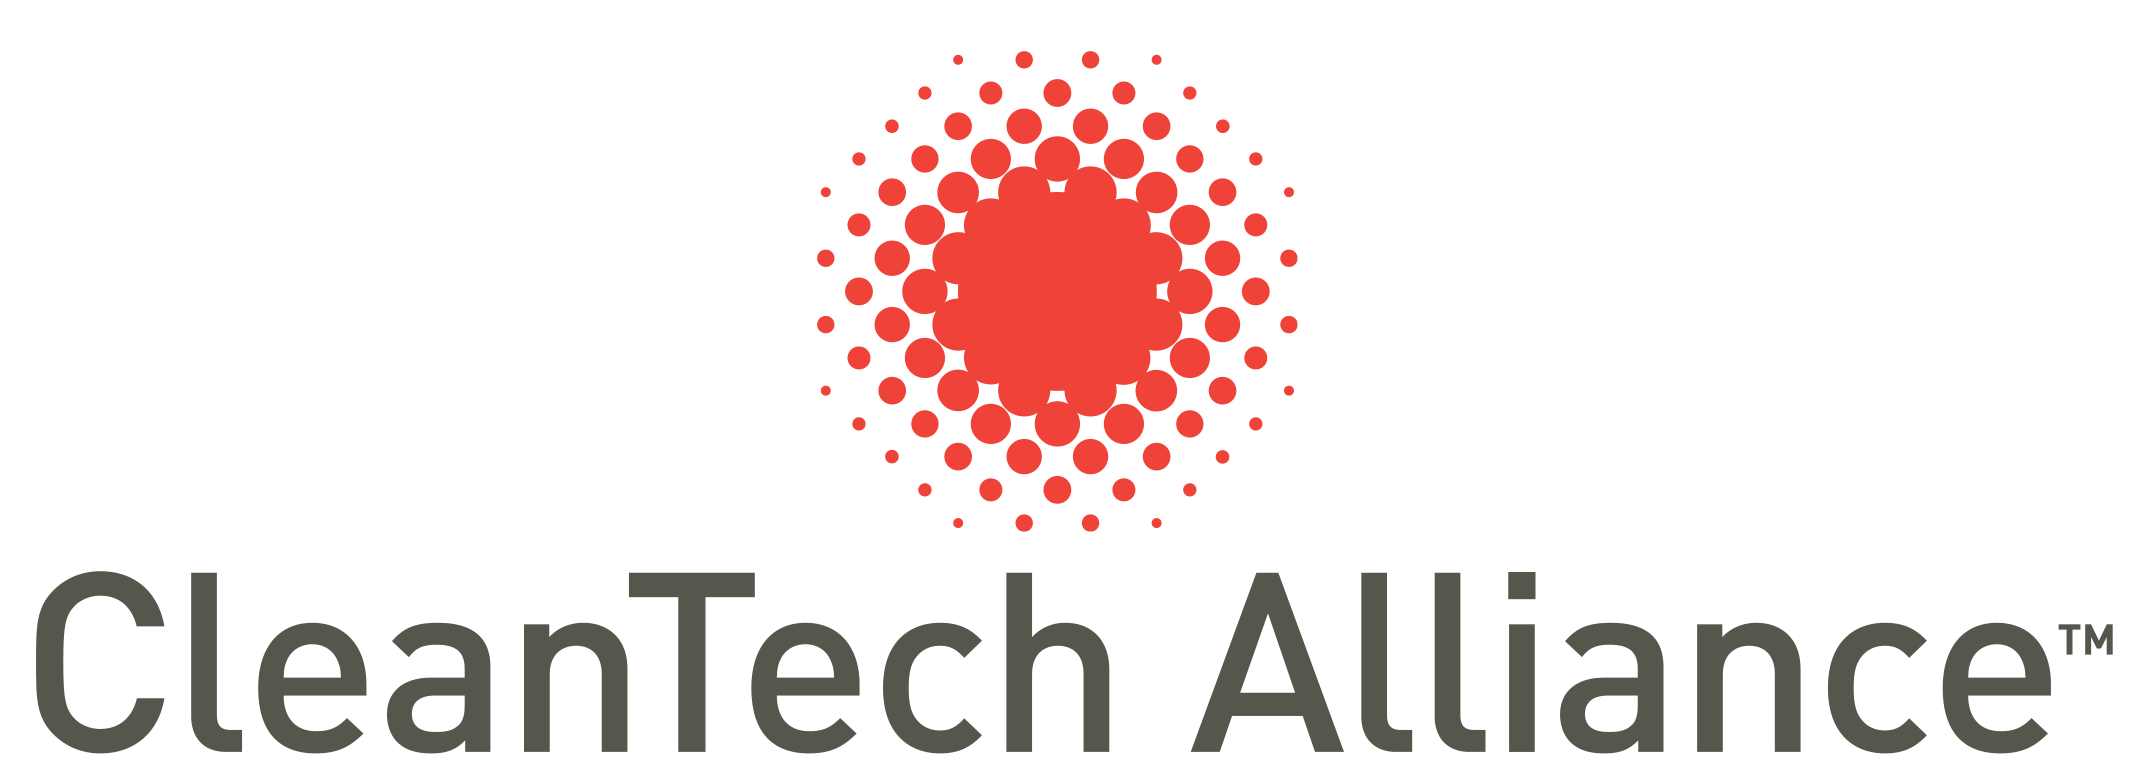 CleanTech Alliance Logo